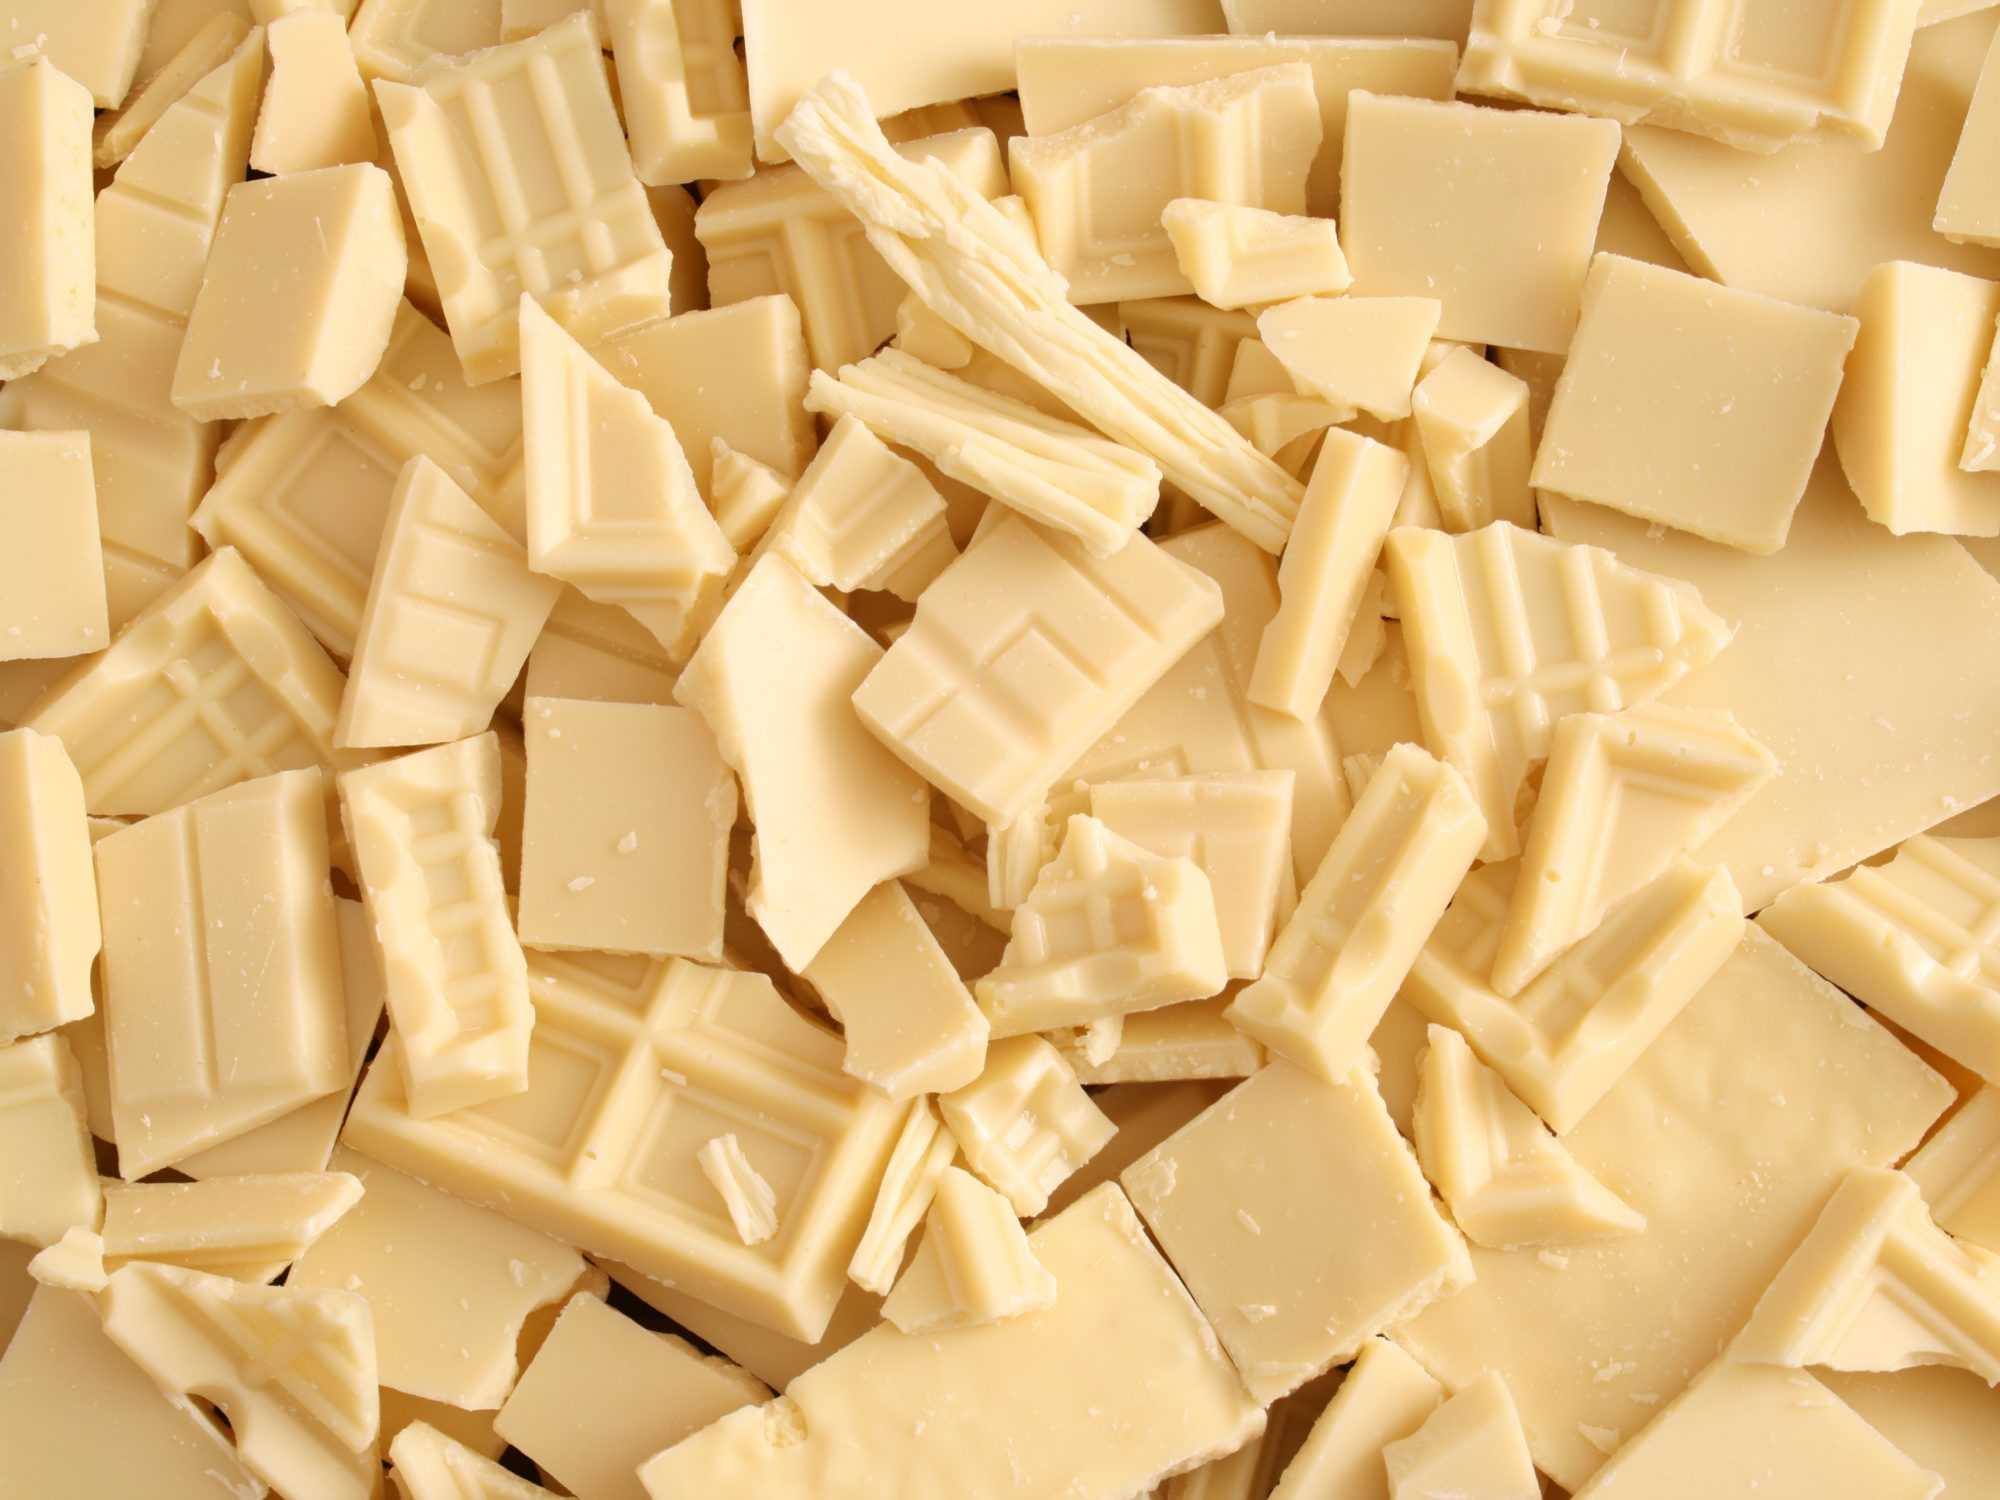 Bakers Sue Nestle Over White Chocolate